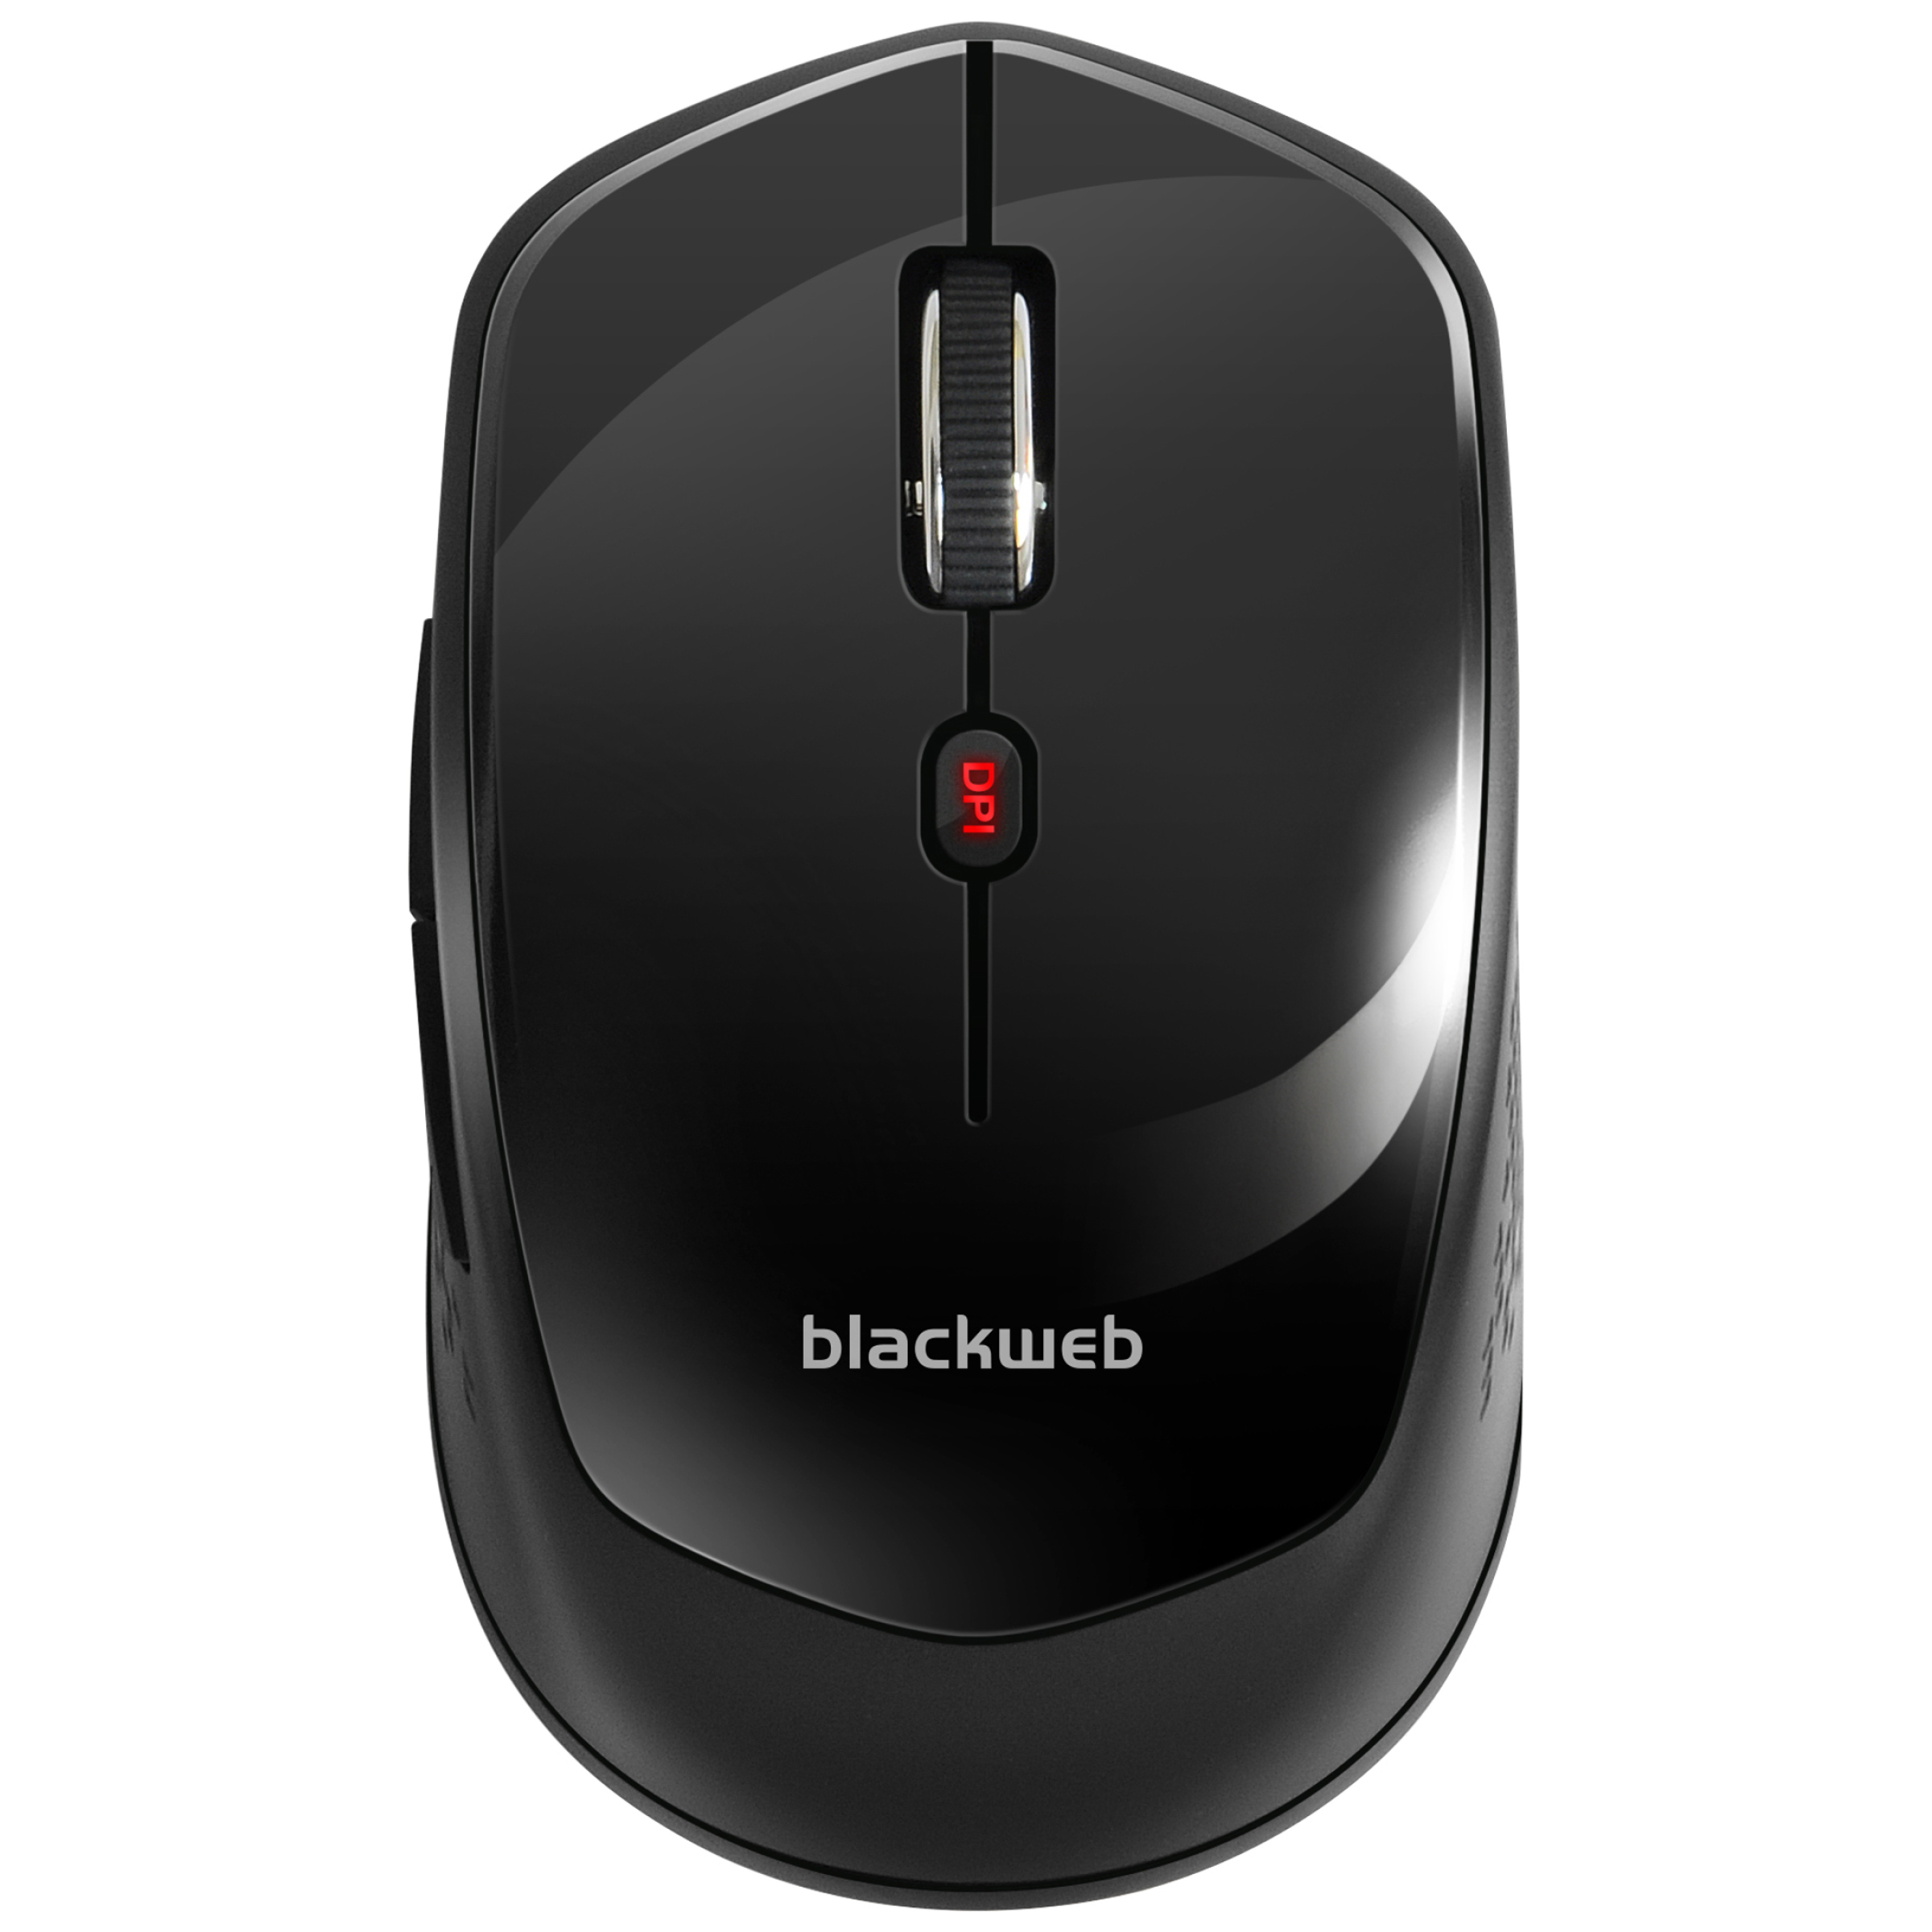 BlackWeb 6-Button Wireless Mouse, Black